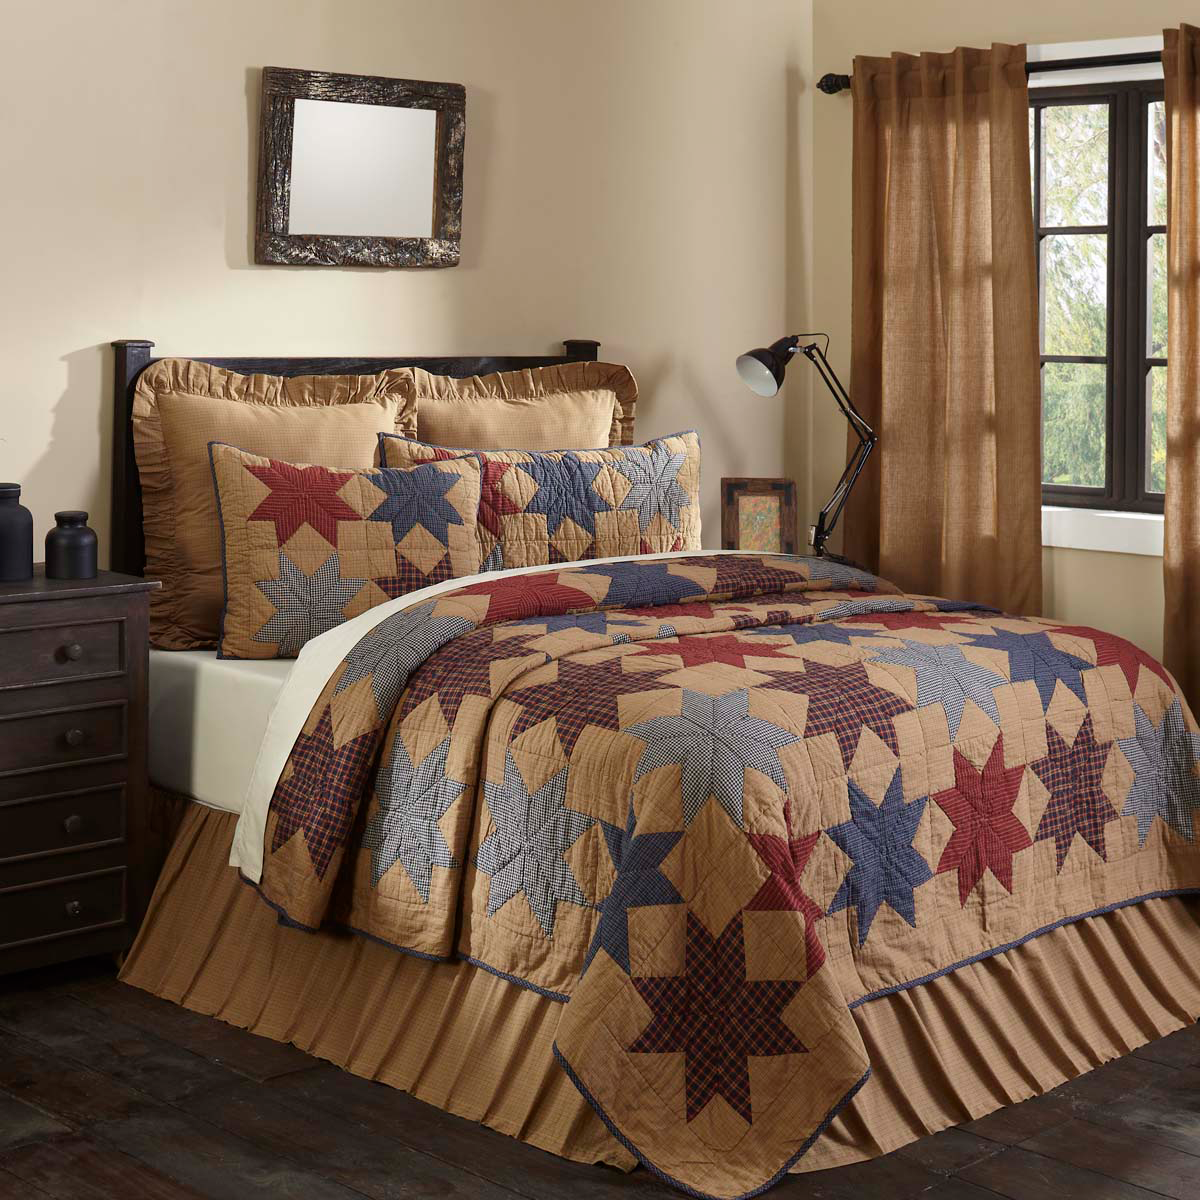 KINDrot STAR Full Queen QUILT   Blau rot 8 POINT CABIN LODGE braun PLAID